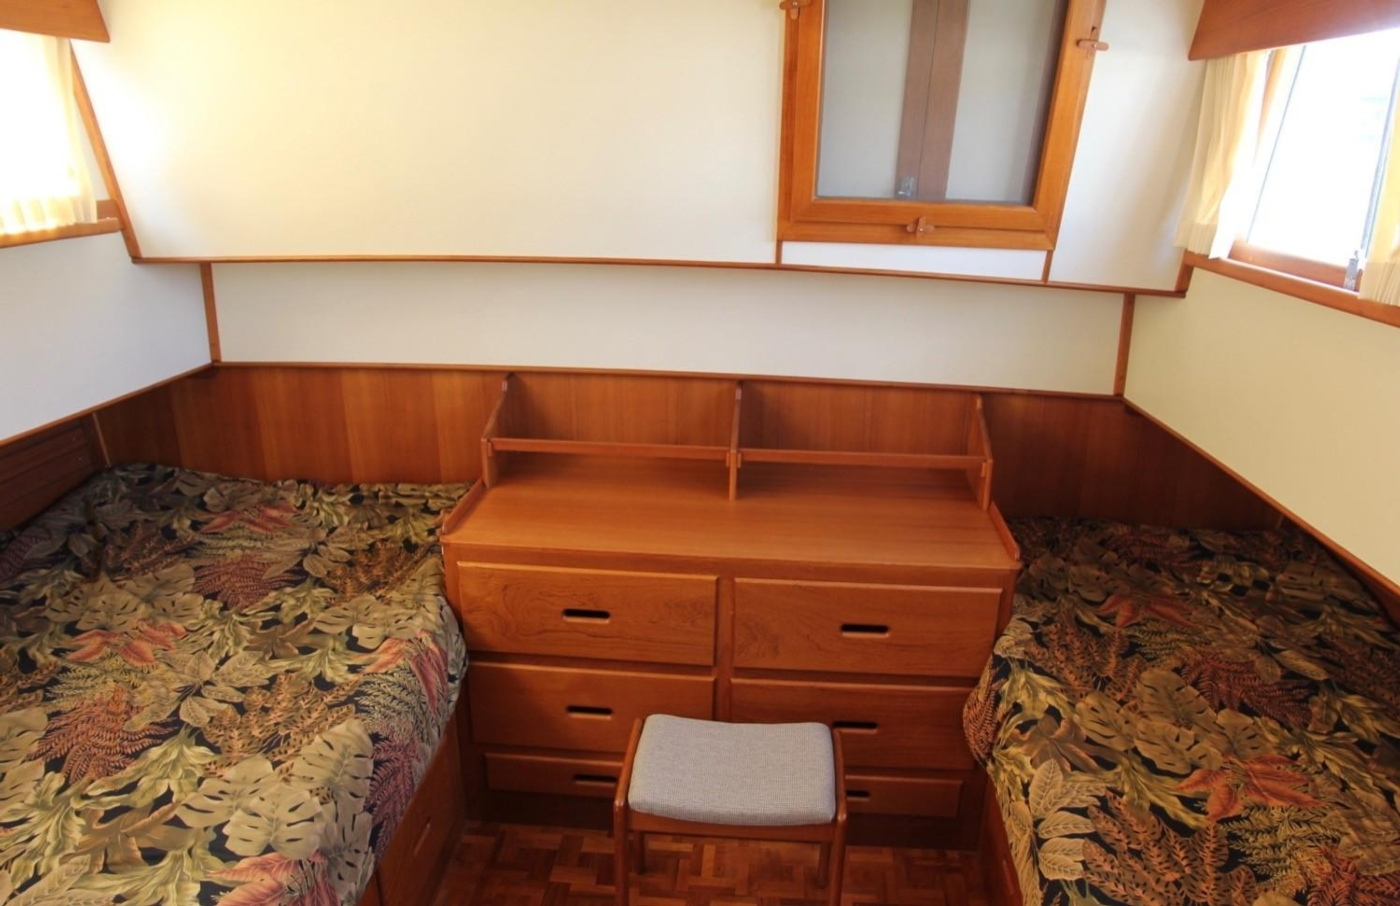 1995 Grand Banks Classic, Aft Accommodation Cabin